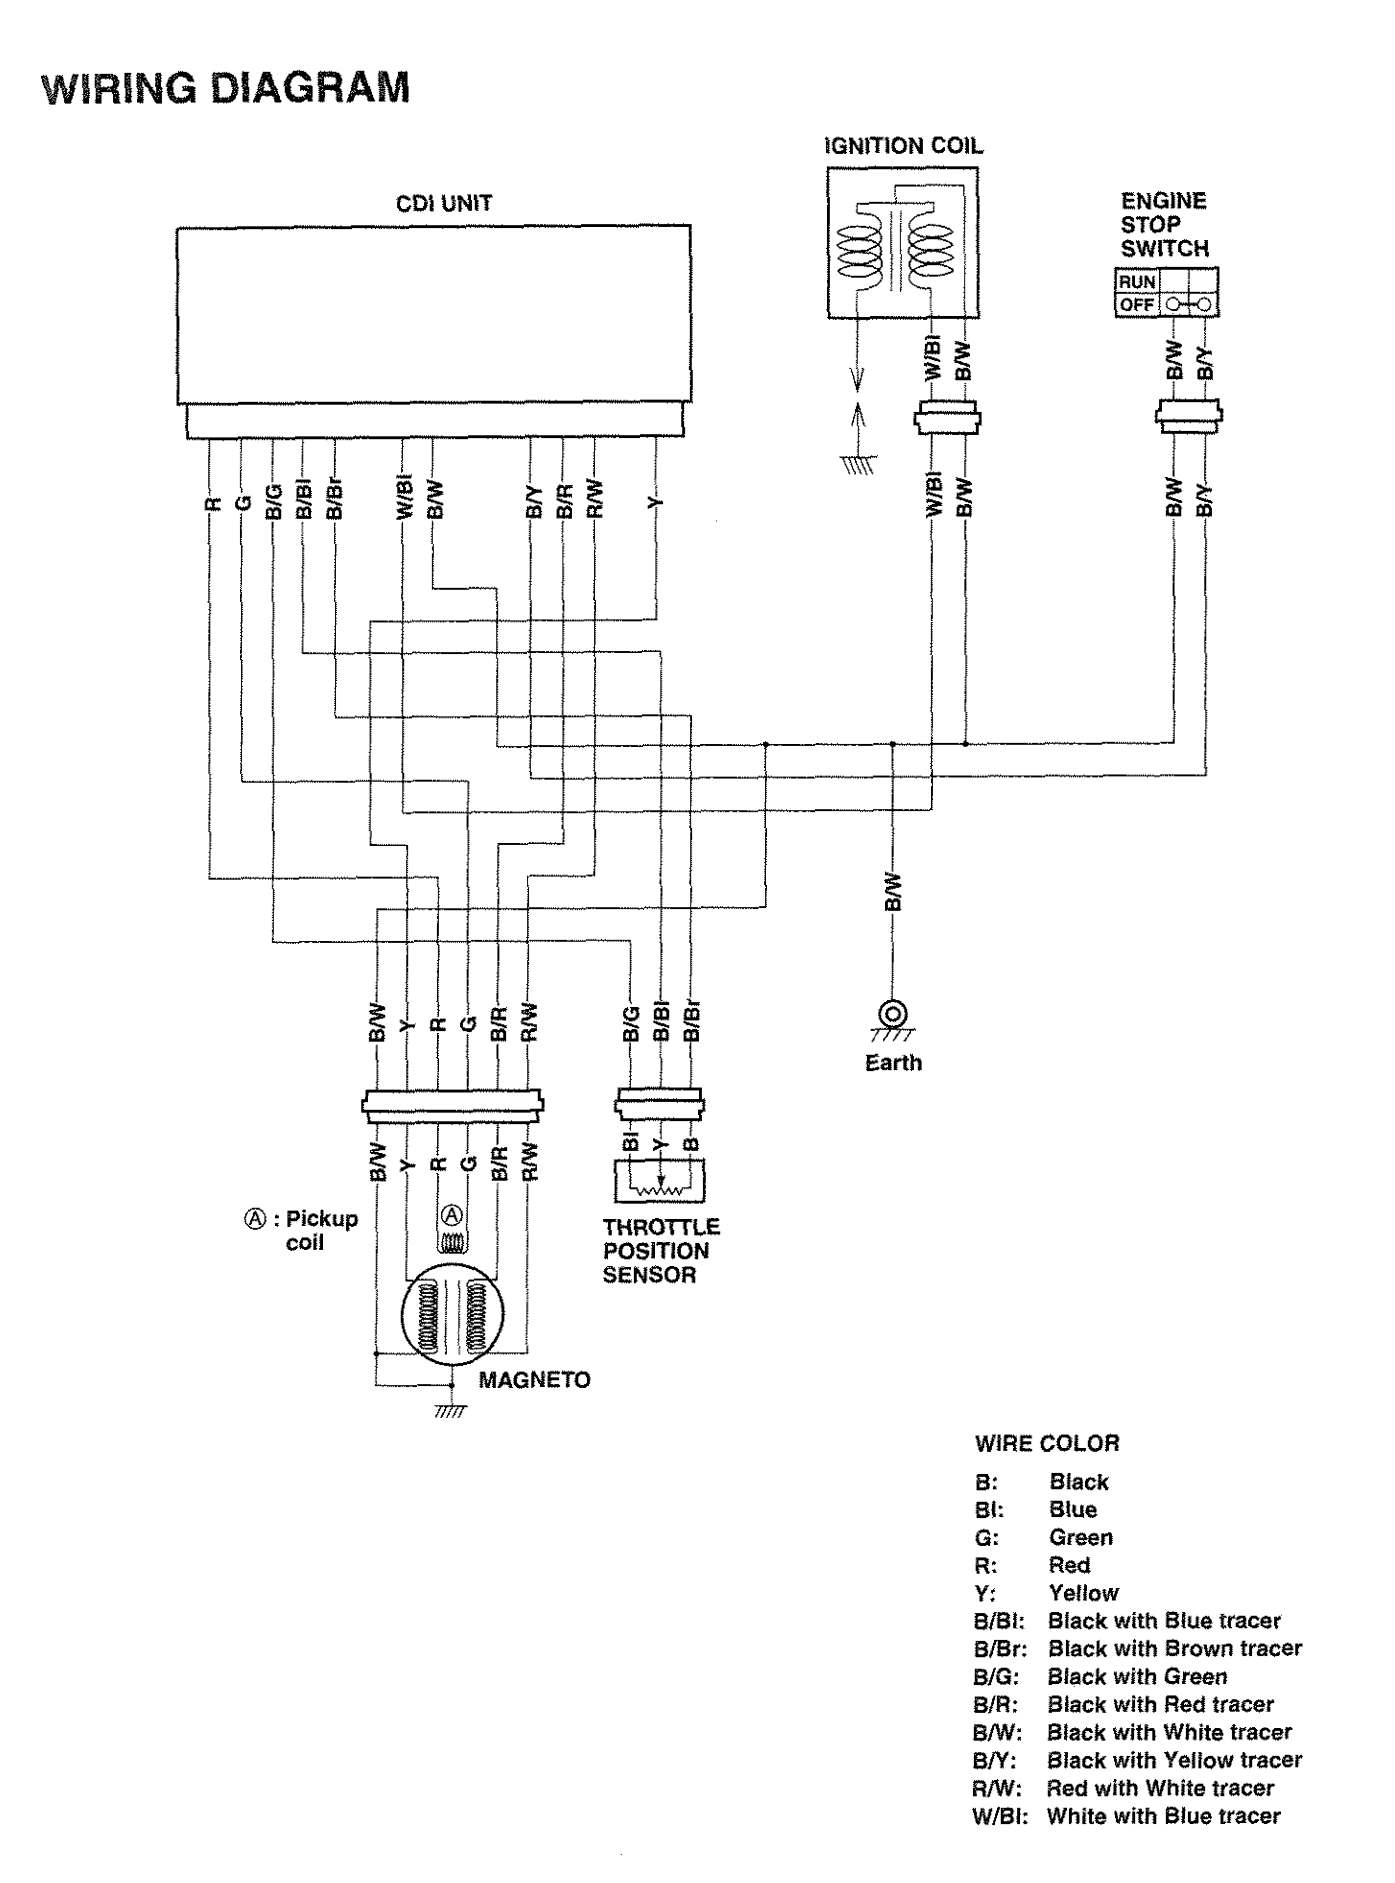 6 Volt Positive Ground Wiring Wiring Wiring Diagram Images